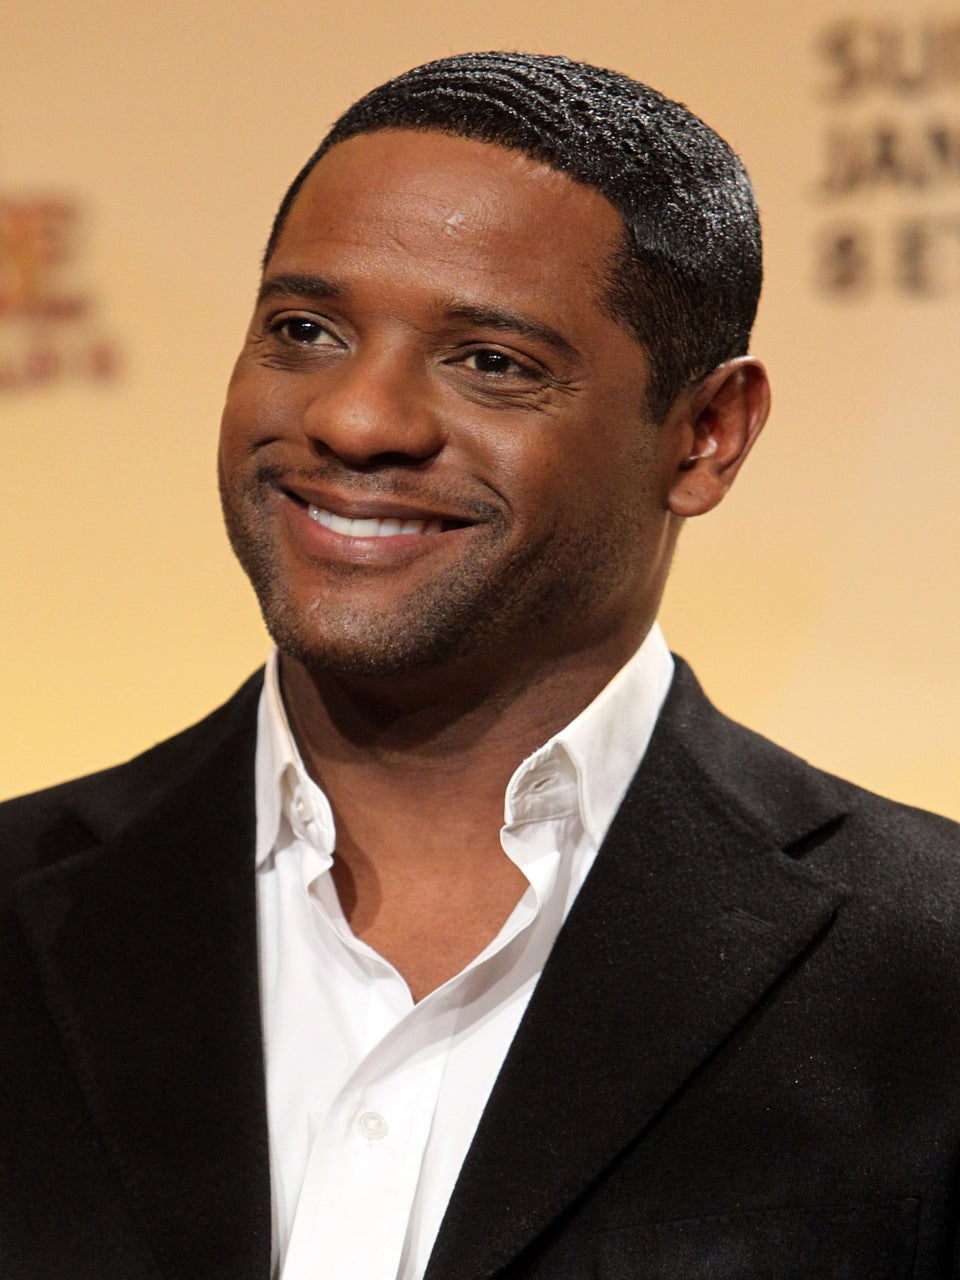 Blair Underwood: An Appreciation